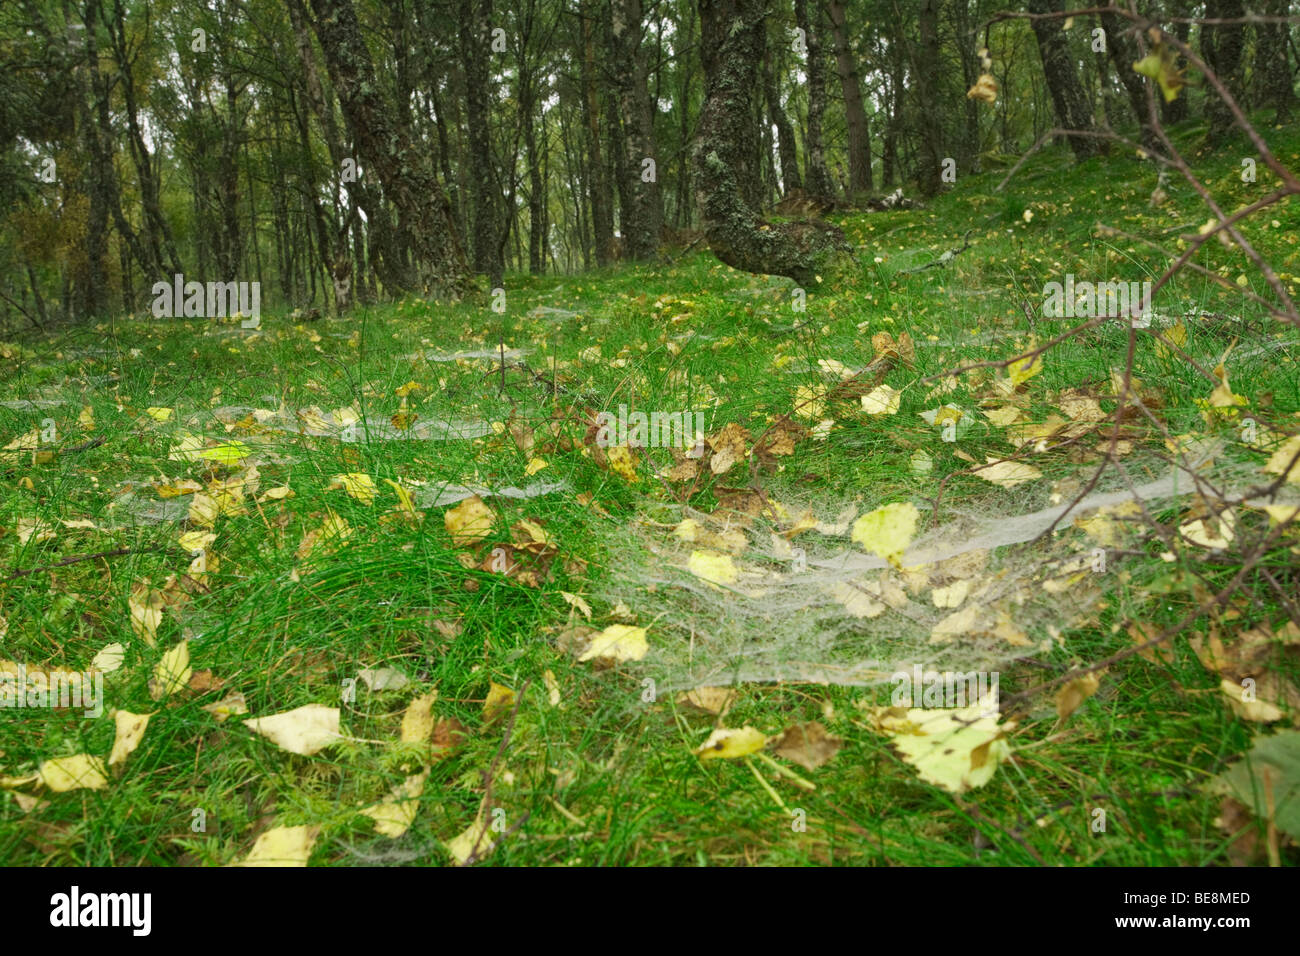 Mist water droplets on spiders webs on the forest floor in a silver birch wood, Boat of Garten, Cairngorms National - Stock Image